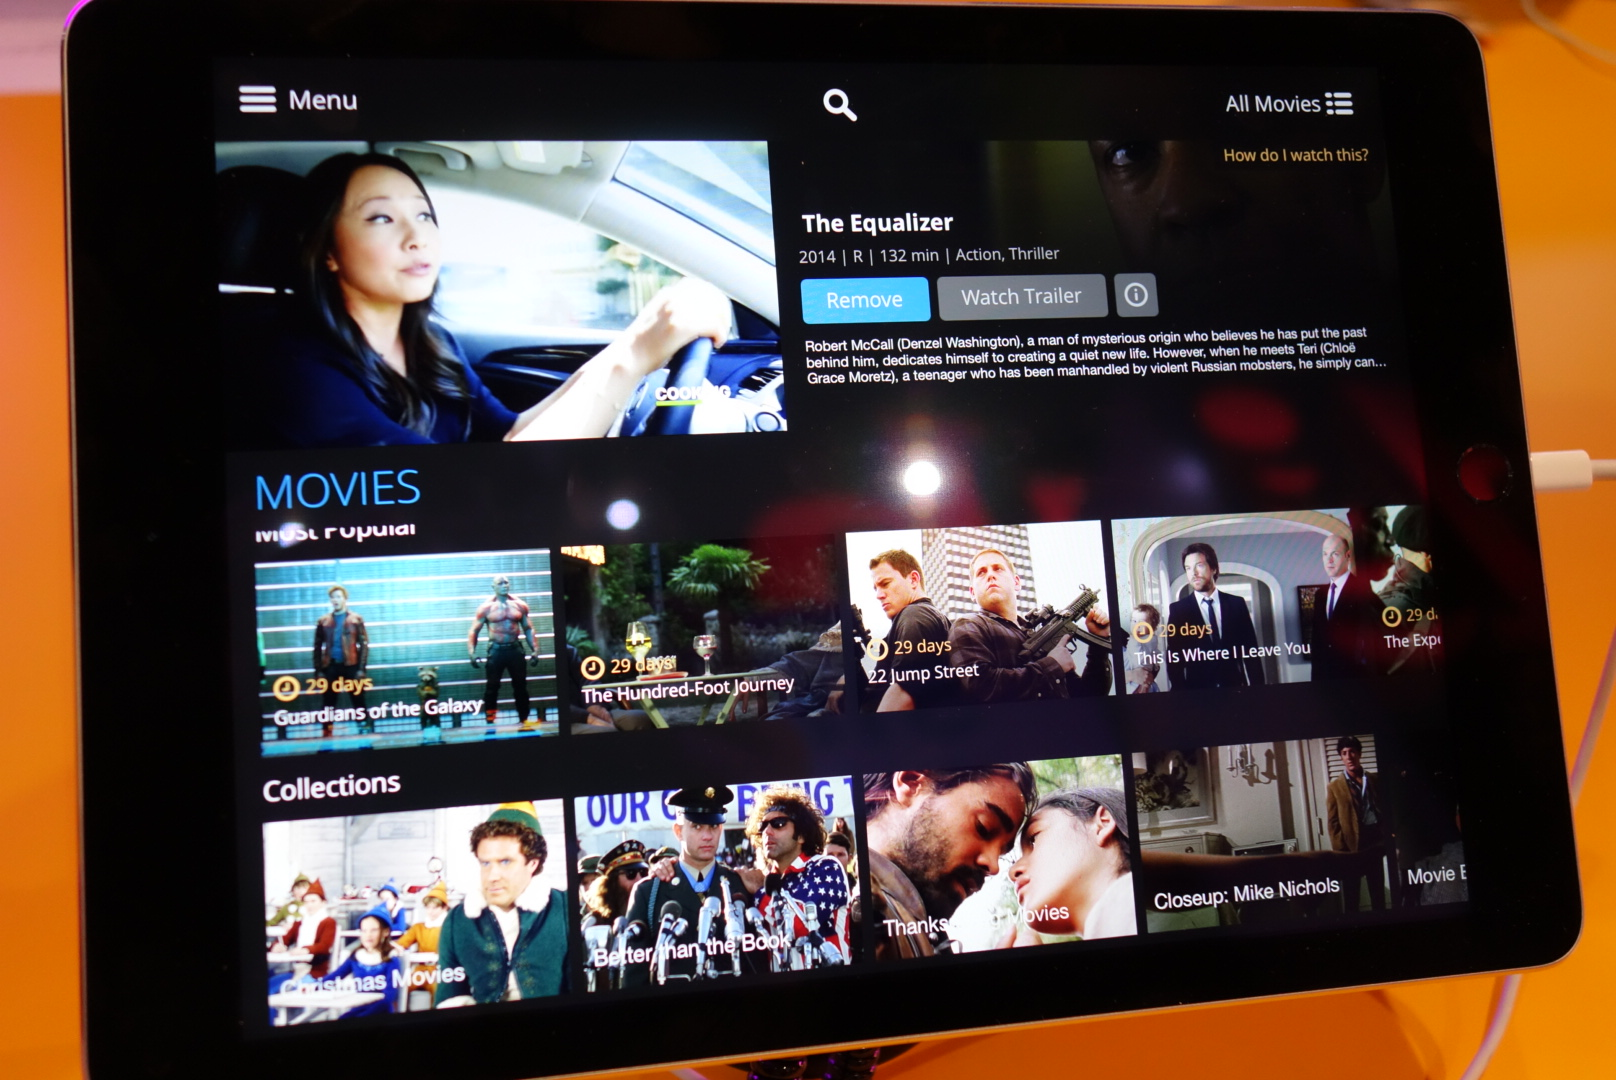 Why Dish's Sling TV Is A Factor In Pending Comcast/Time Warner Cable Merger